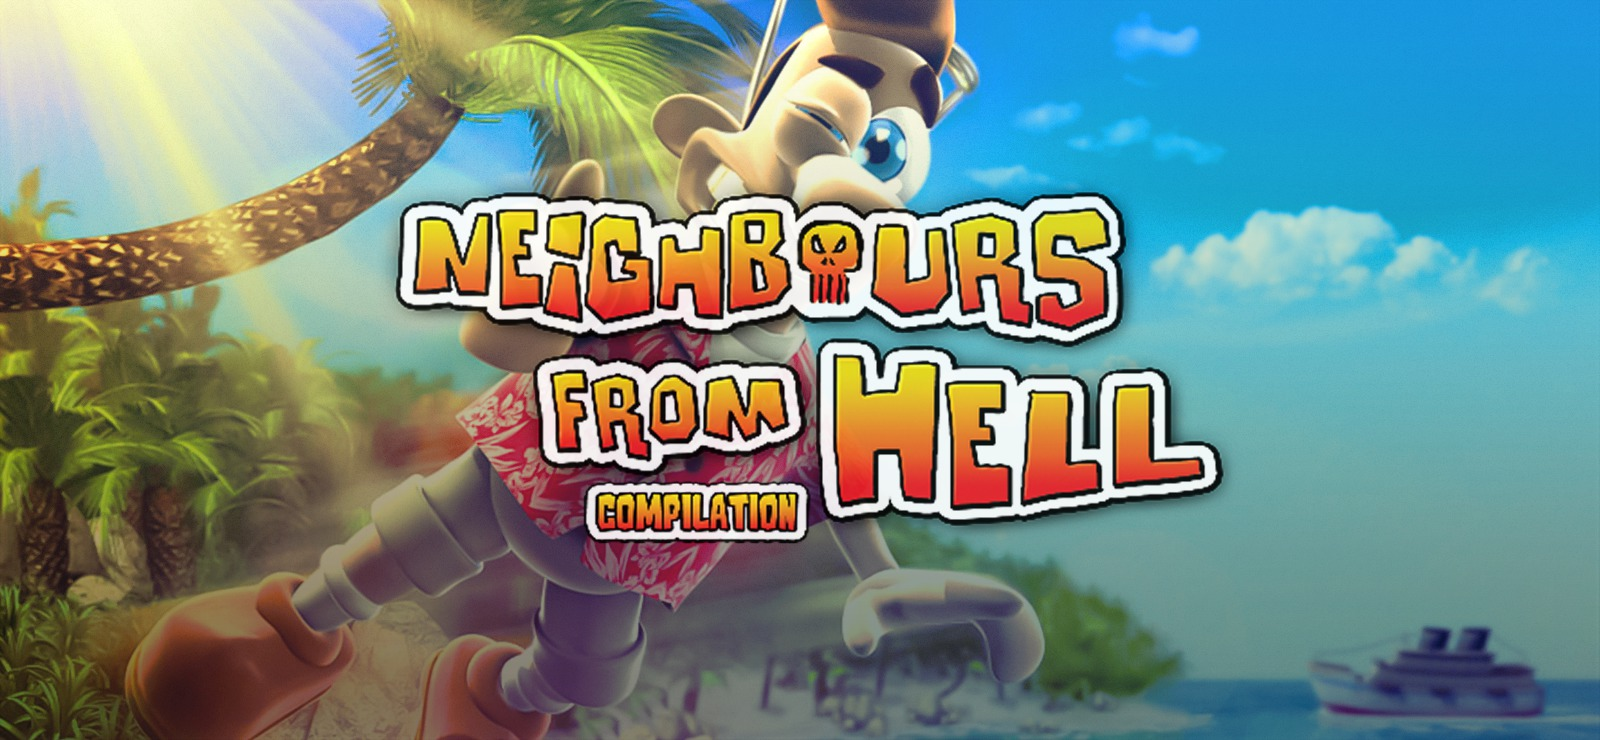 Neighbours From Hell Compilation(Steam Key/Region Free)